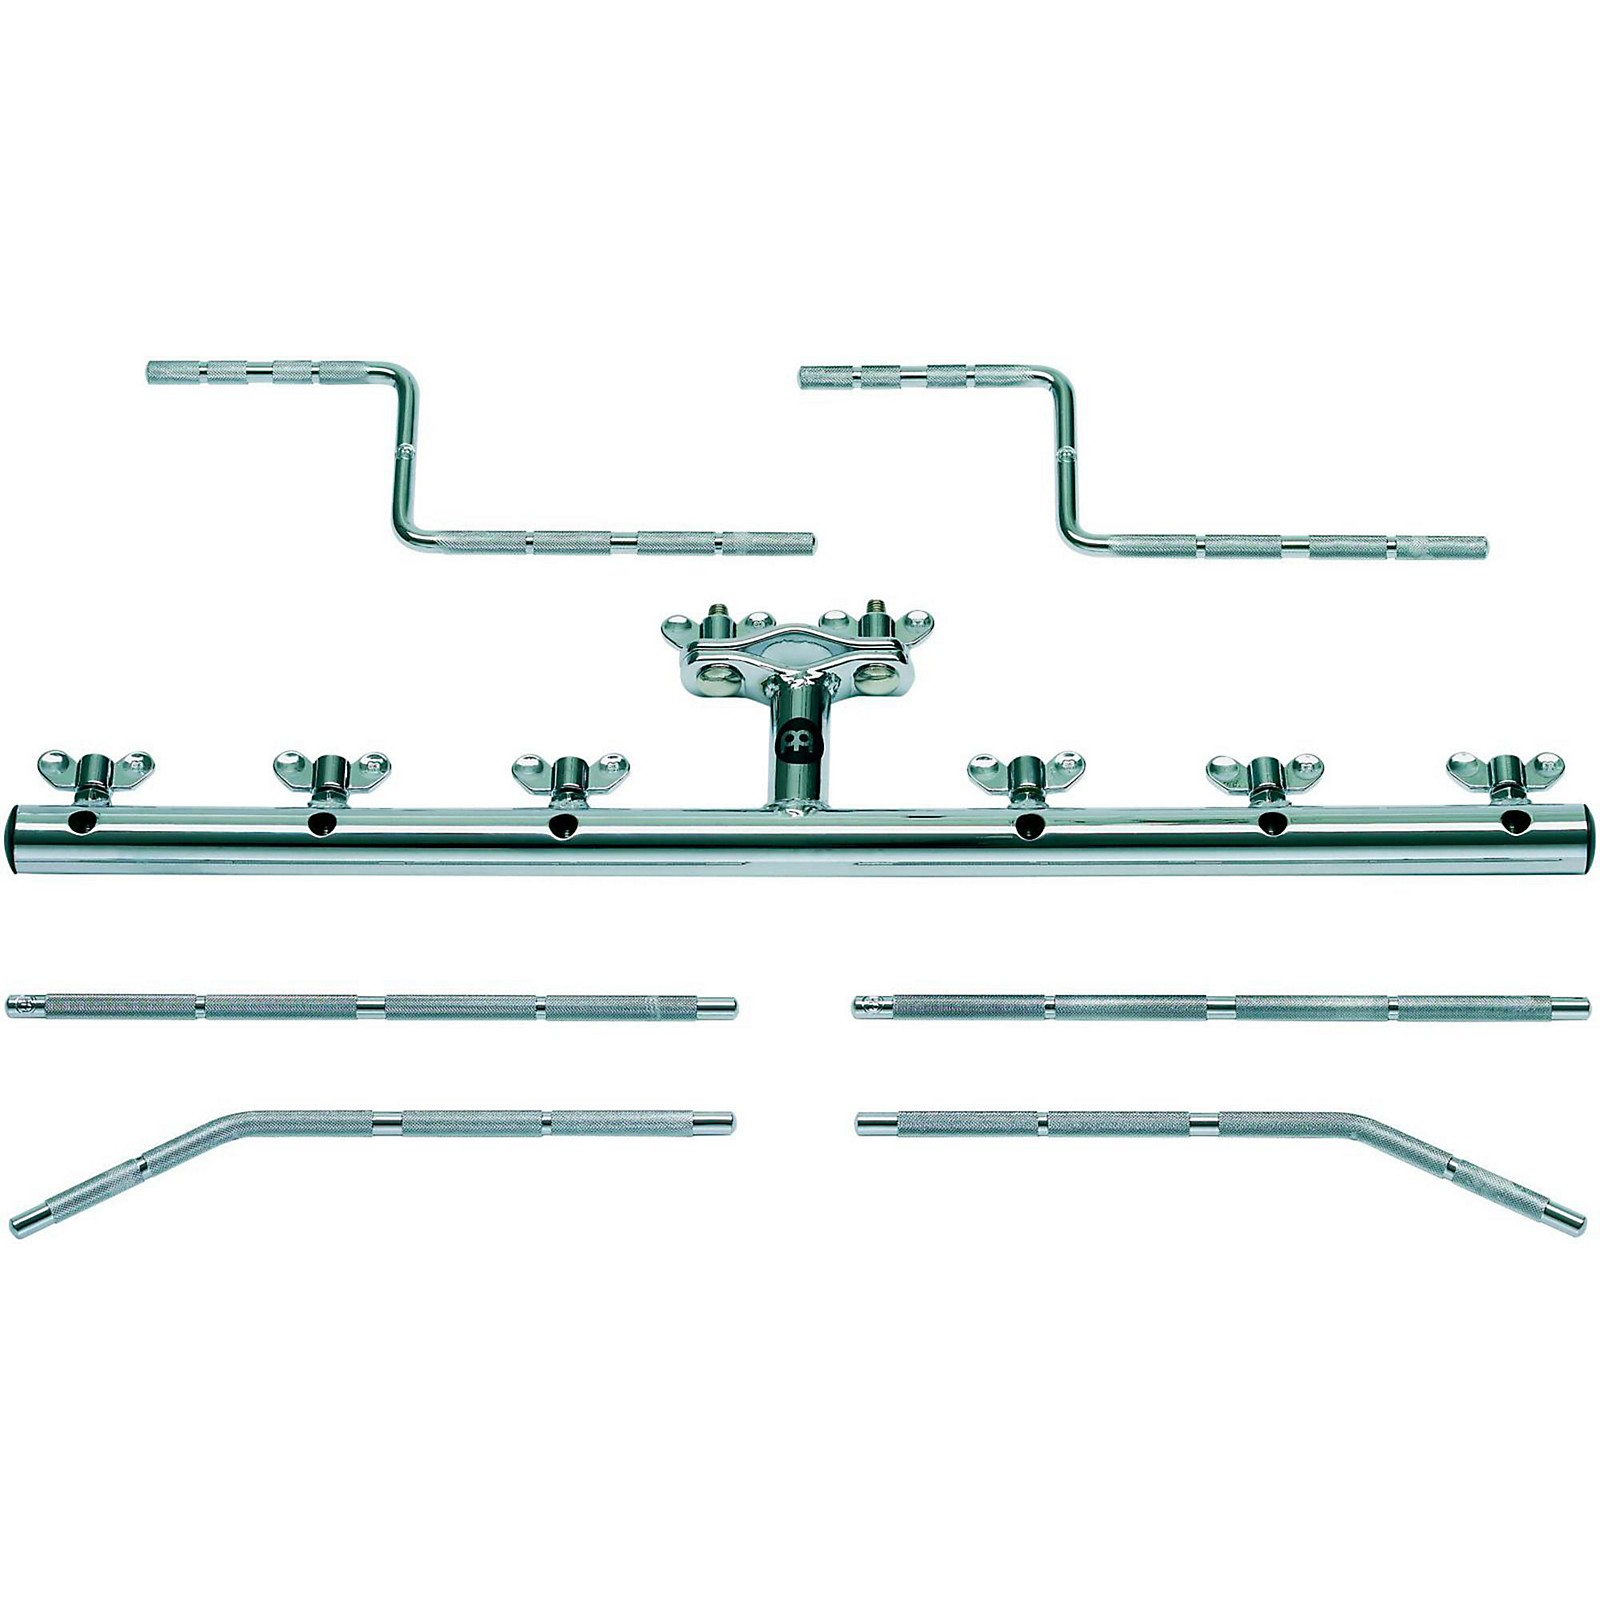 Meinl 6-Rod Percussion Mounting Clamp